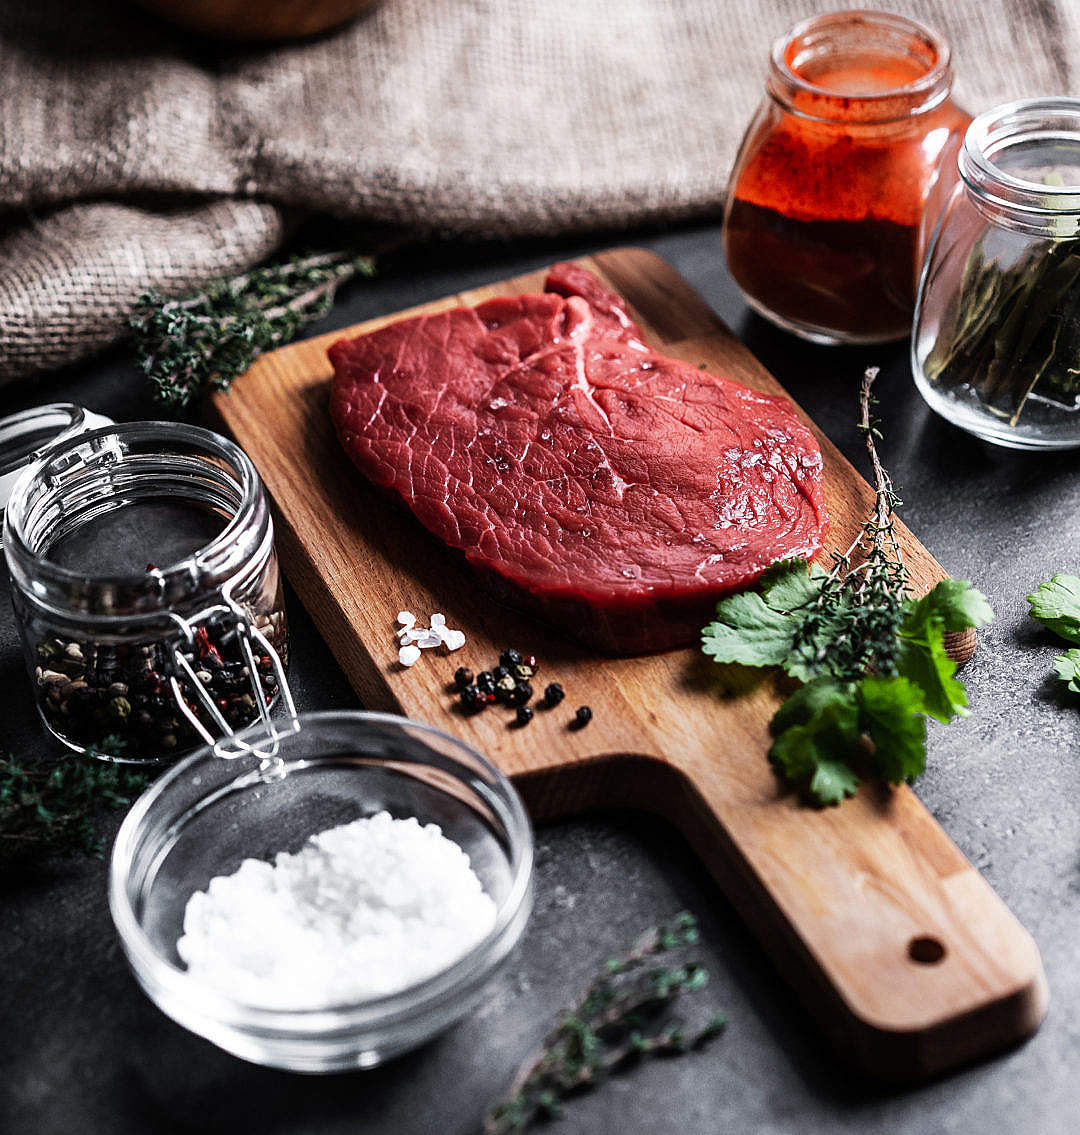 Download Preparing Beef Steak Close Up FREE Stock Photo